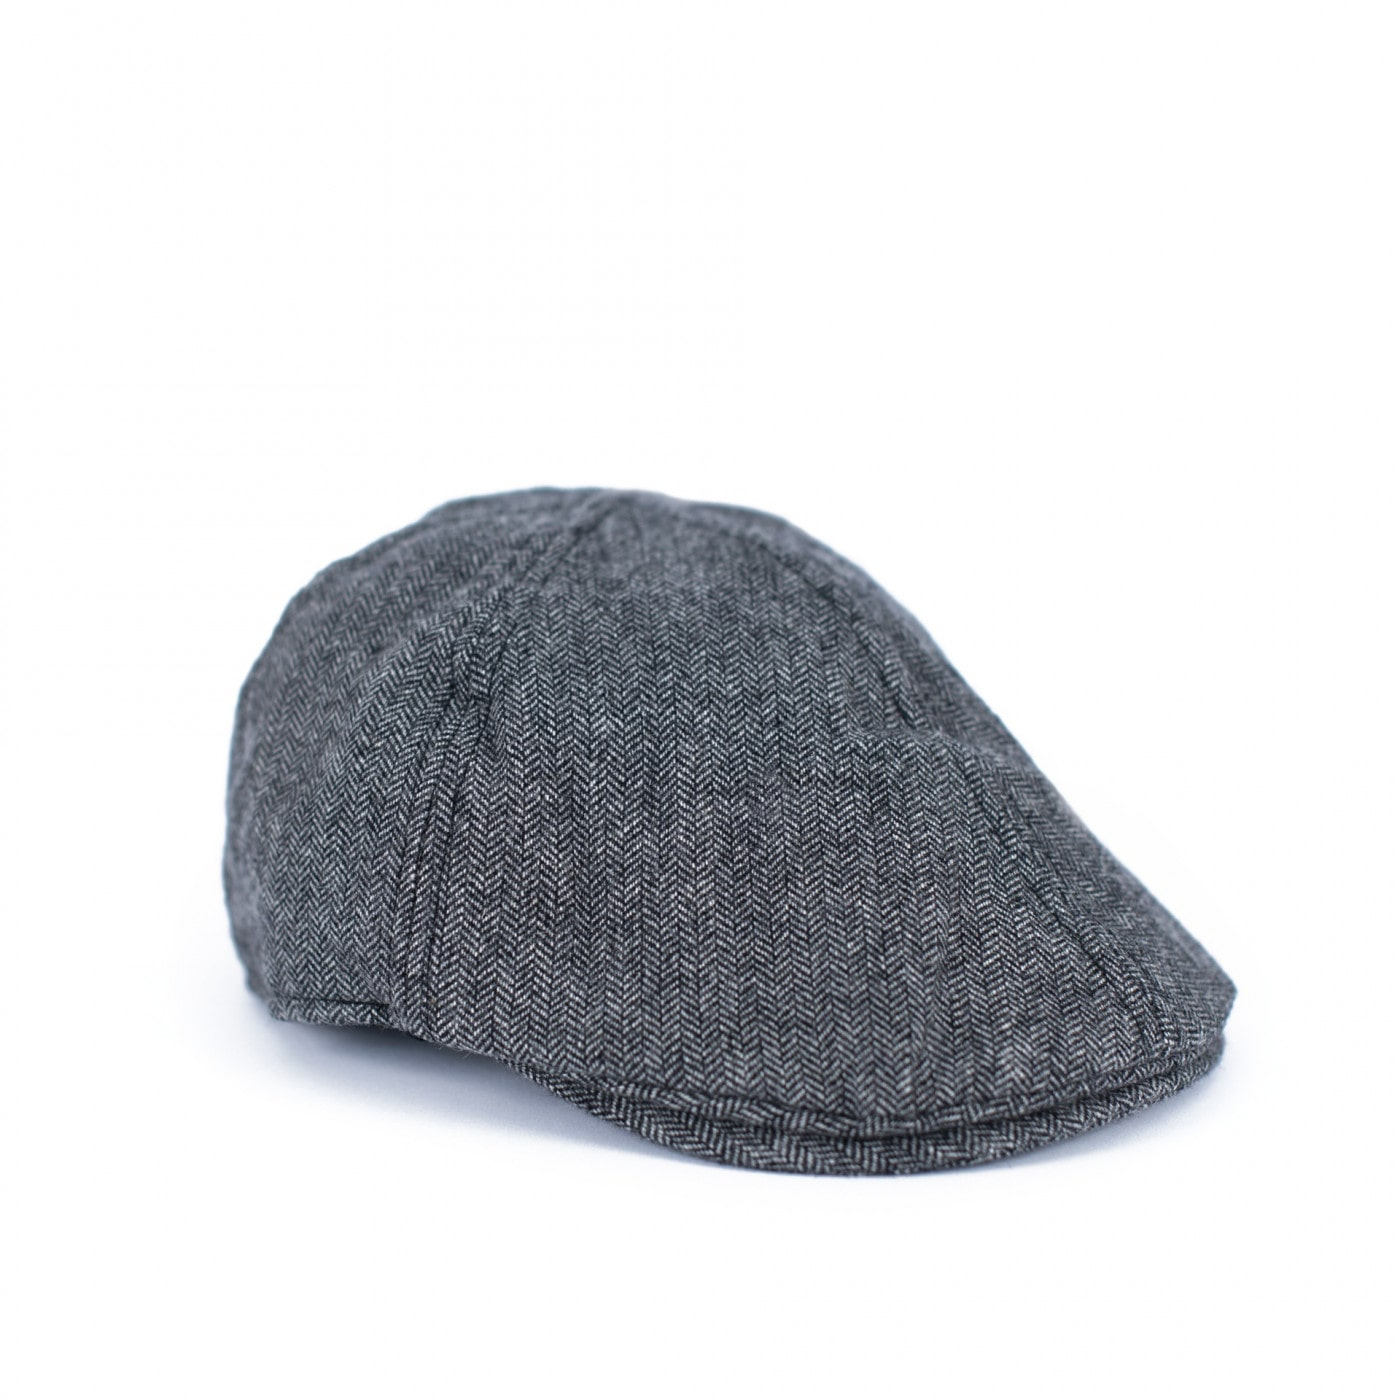 Art Of Polo Man's Hat cz19422